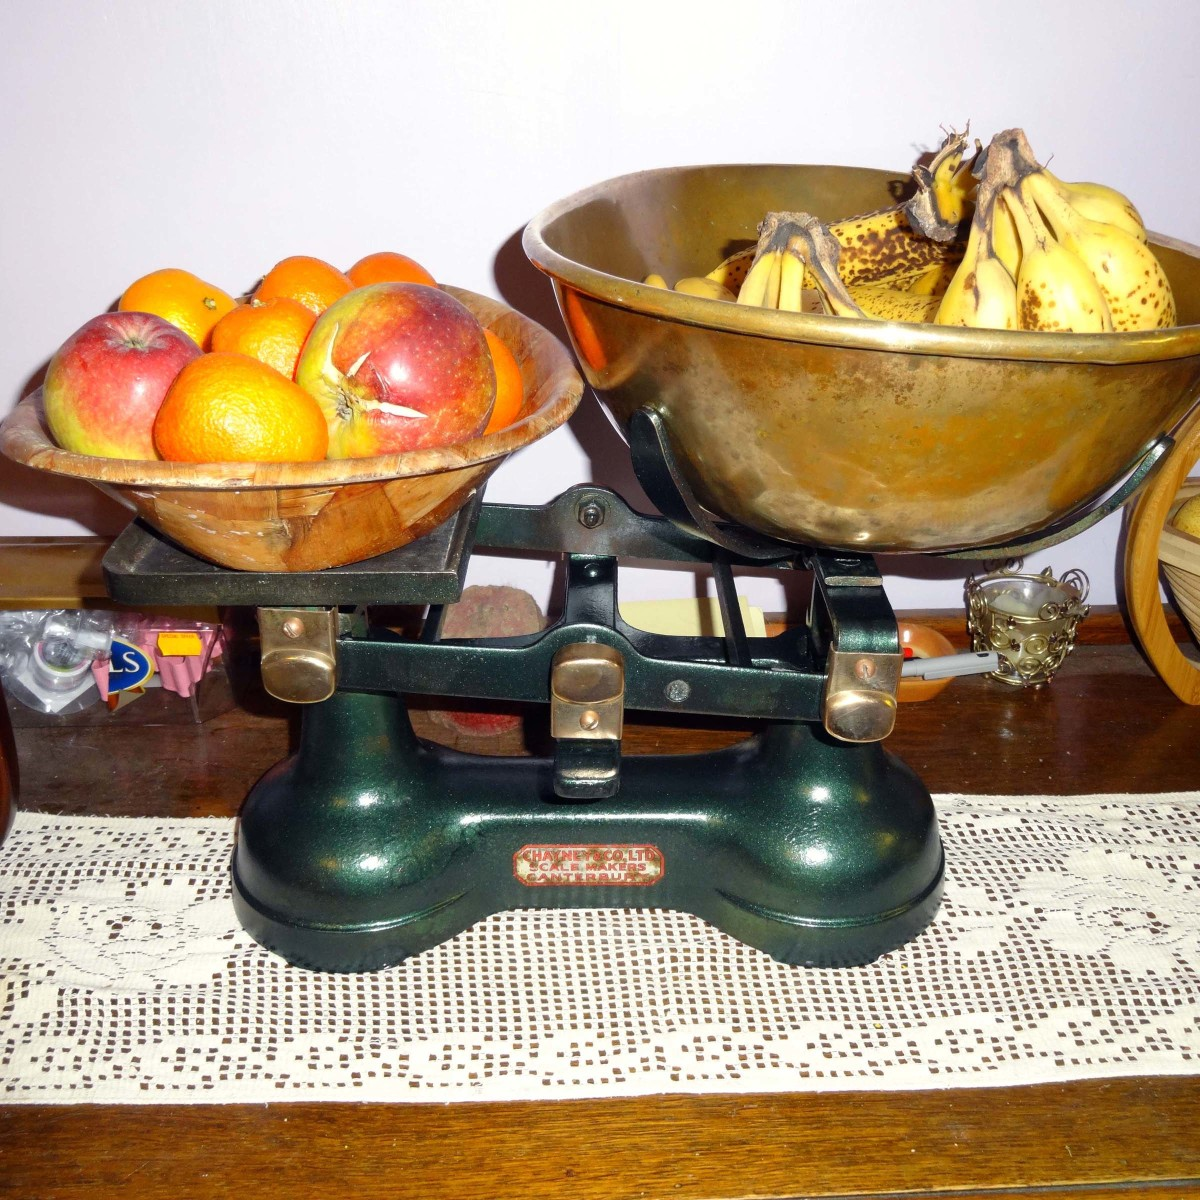 Restoration and Repurposing of an Old Pair of Scales as a Fruit Bowl